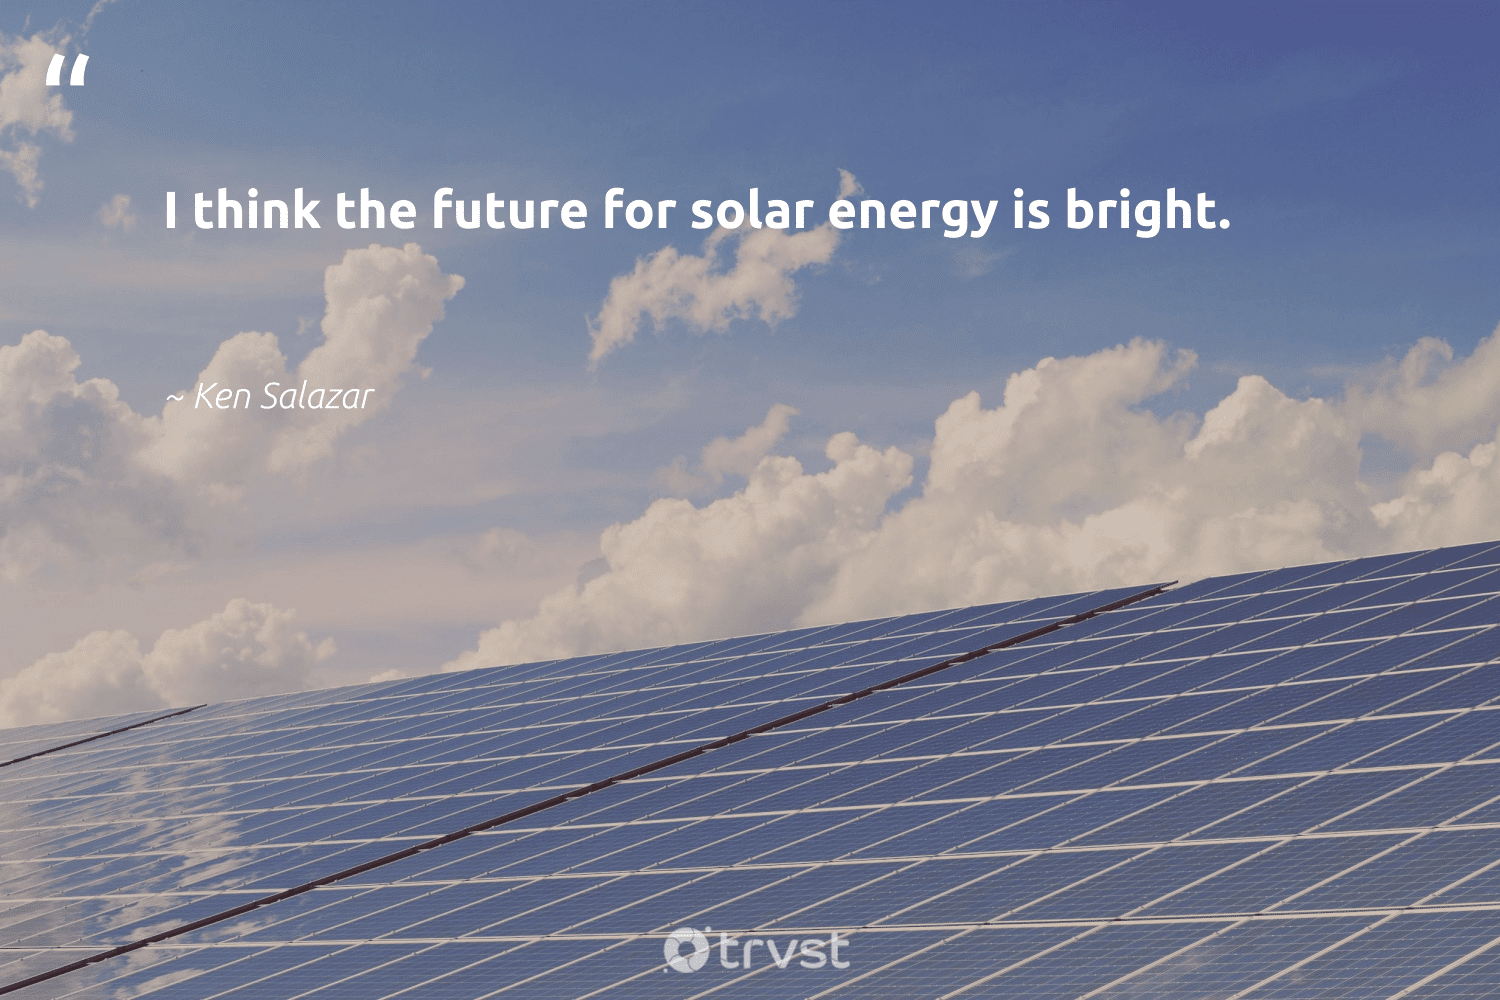 """""""I think the future for solar energy is bright.""""  - Ken Salazar #trvst #quotes #solar #energy #solarenergy #photovoltaic #solarfarms #environment #nature #collectiveaction #solarlife #solarpanels"""